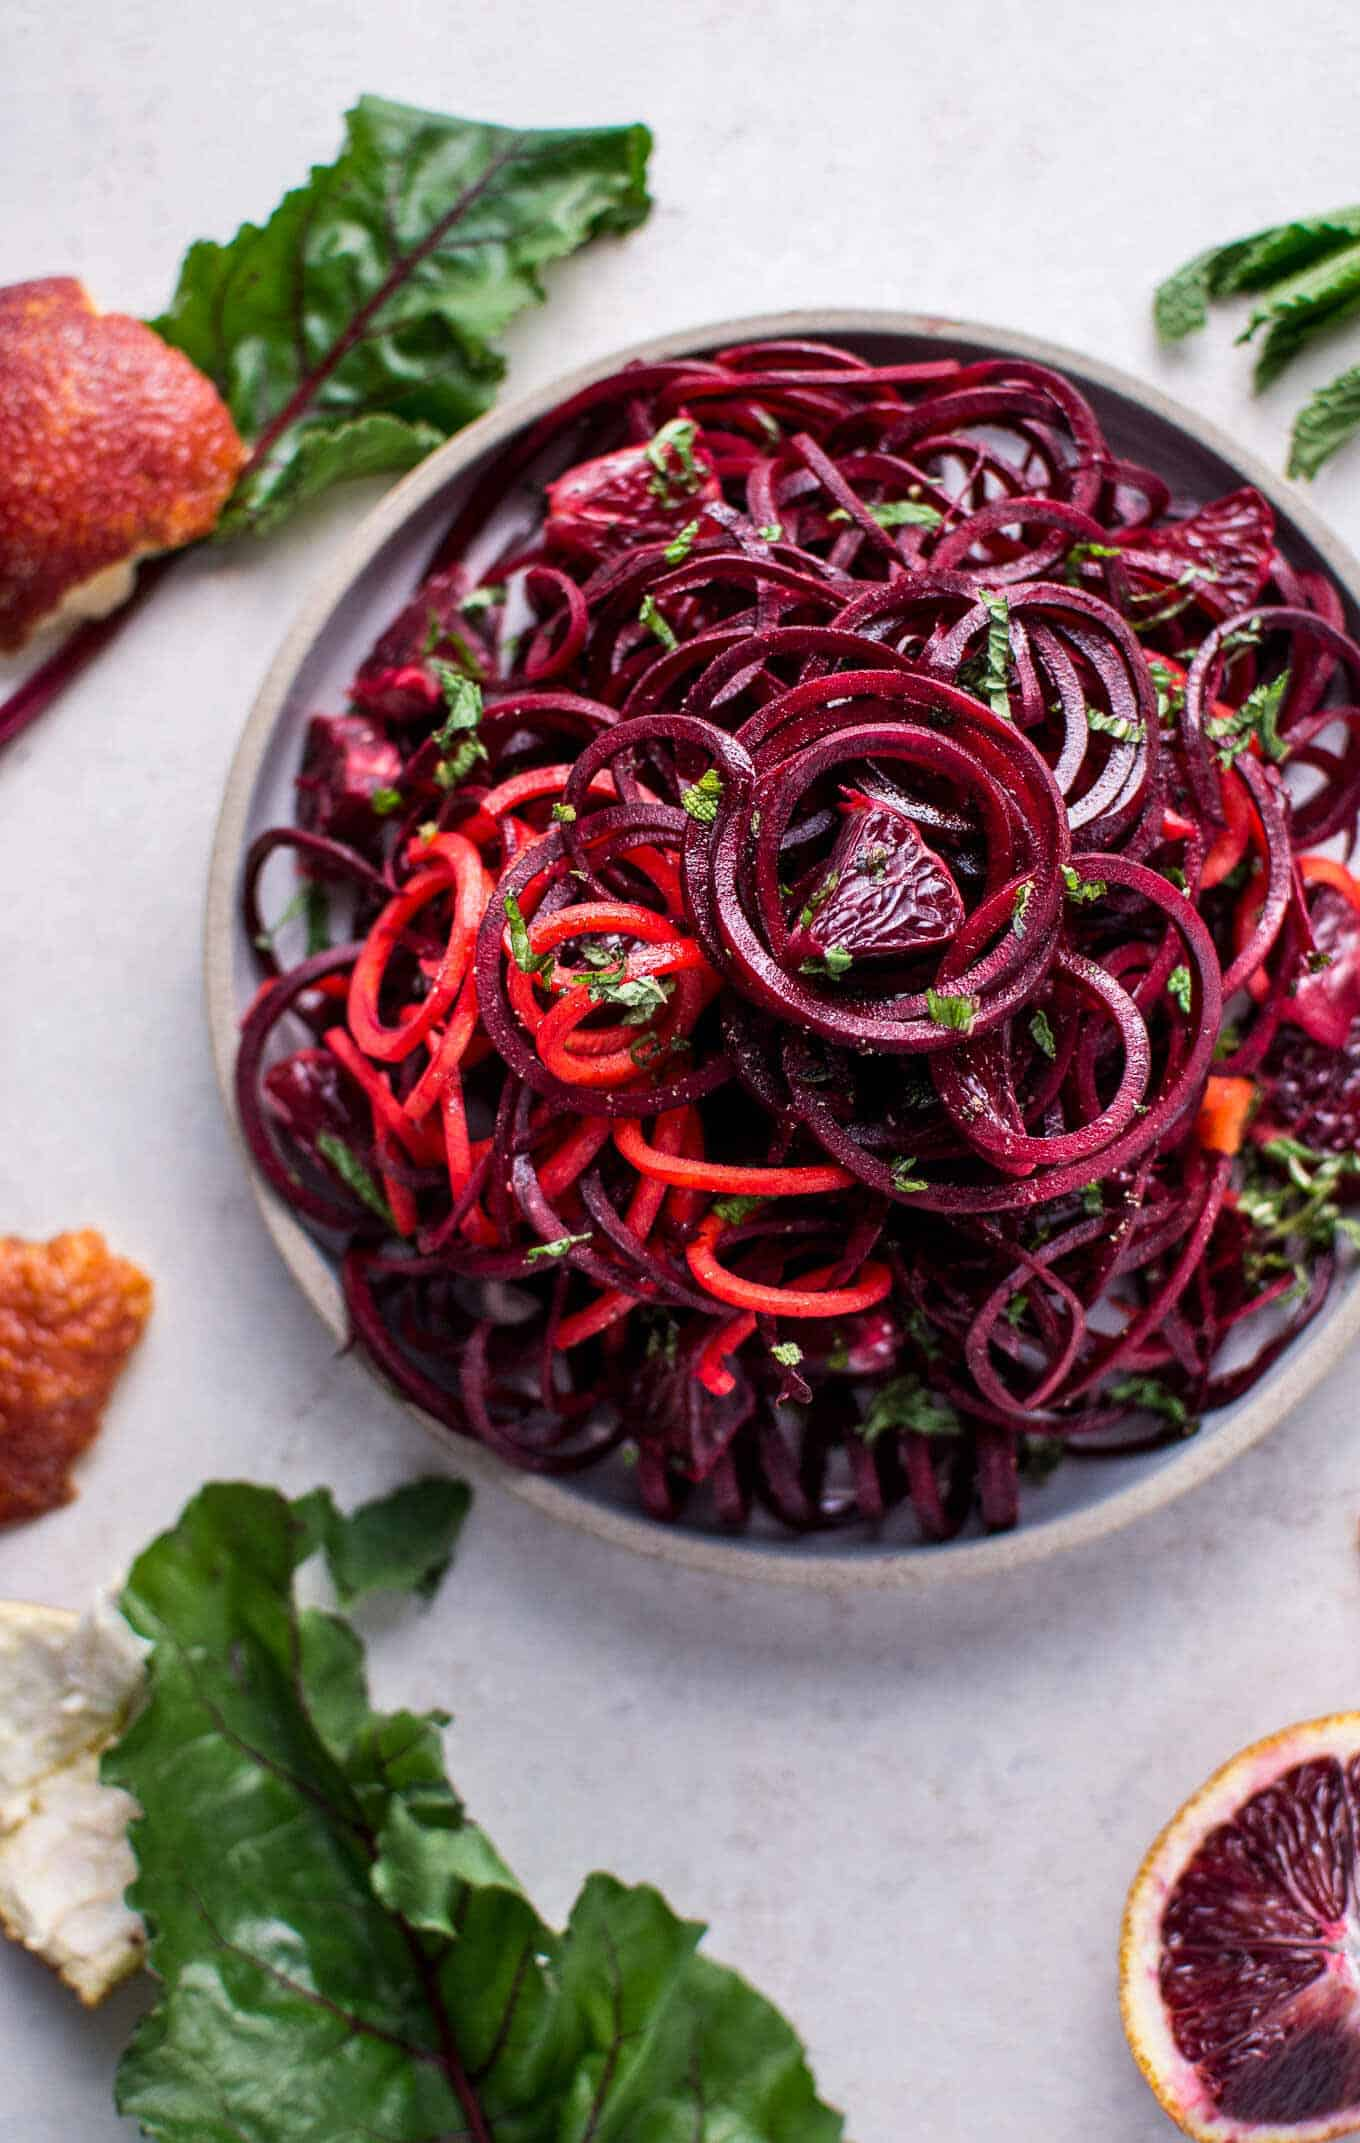 Spiralized raw beet salad with blood oranges + 15 Farmers market recipes to make in March! Delicious, vegetarian, late winter/ early spring, (mostly) healthy recipes made with fresh, seasonal produce from your local farmers market or CSA bin. Eat local!